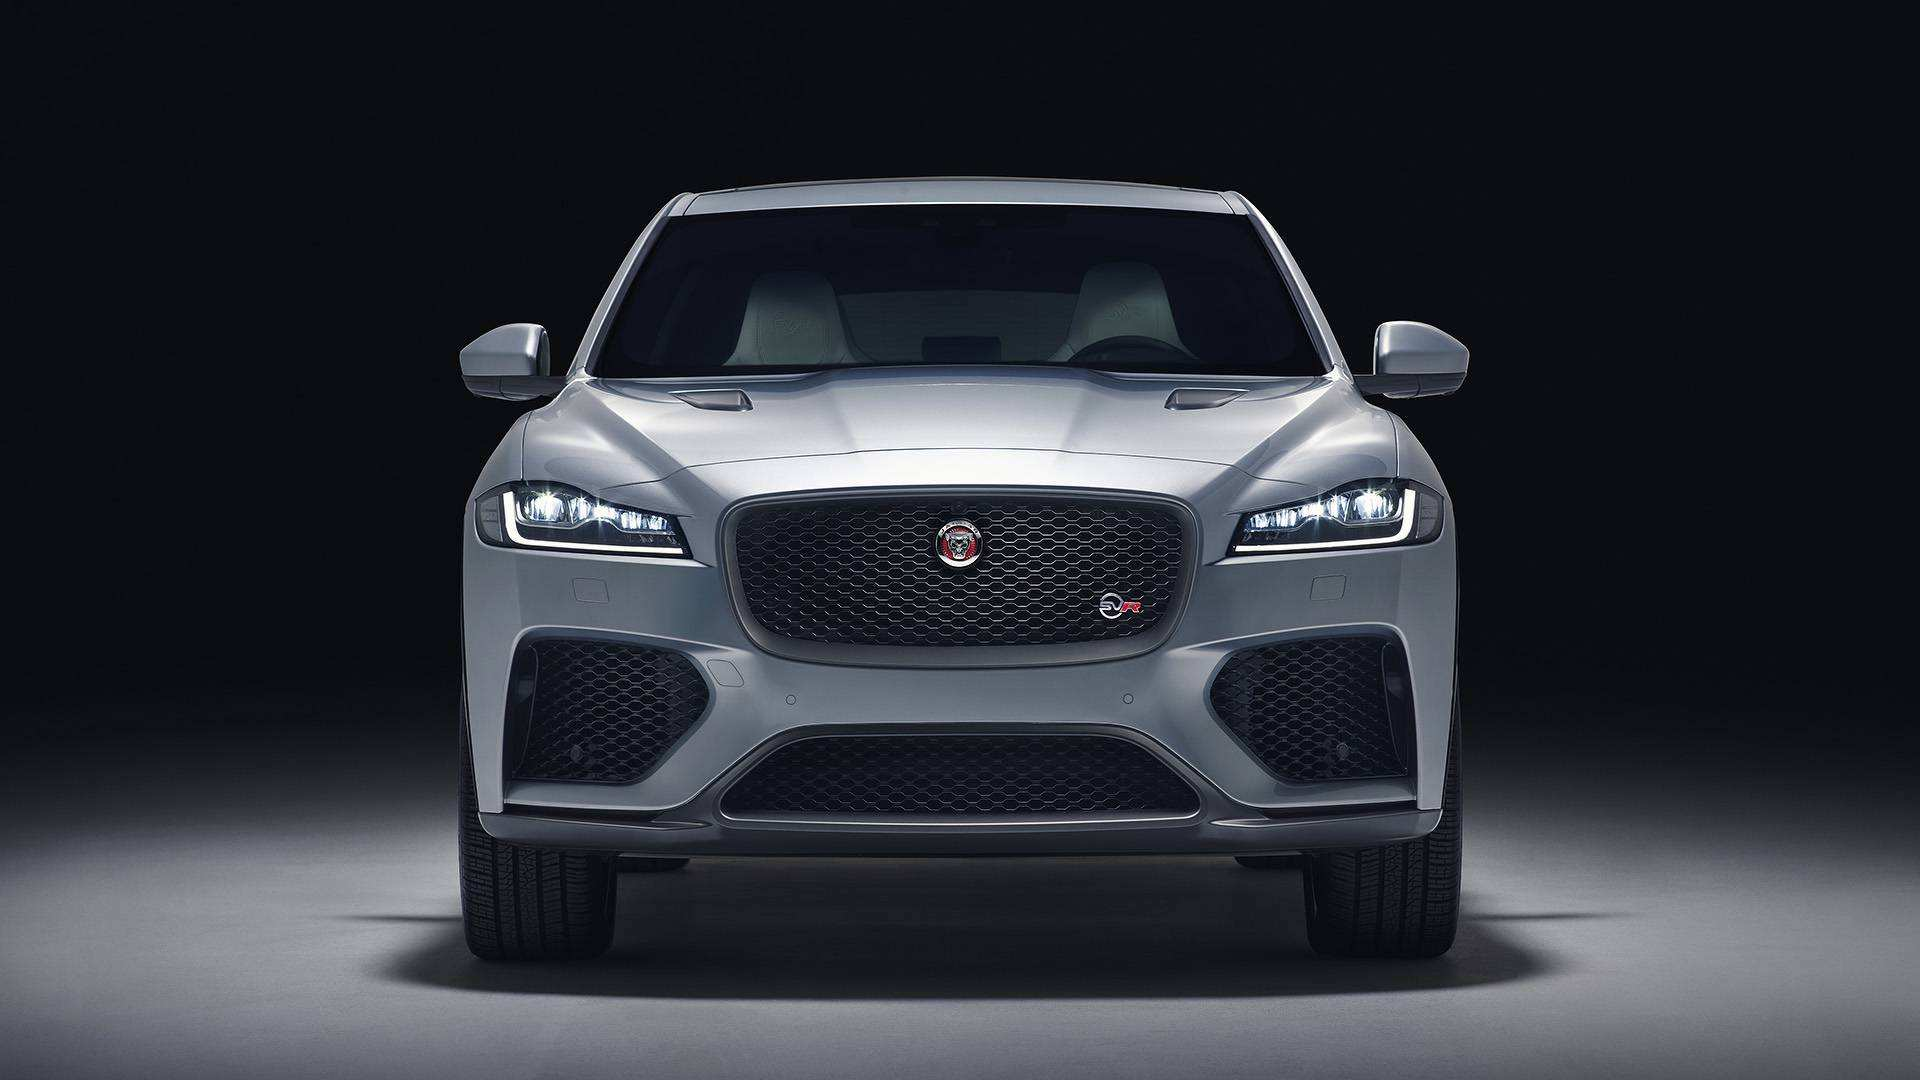 84 New Jaguar I Pace 2020 Updates Performance